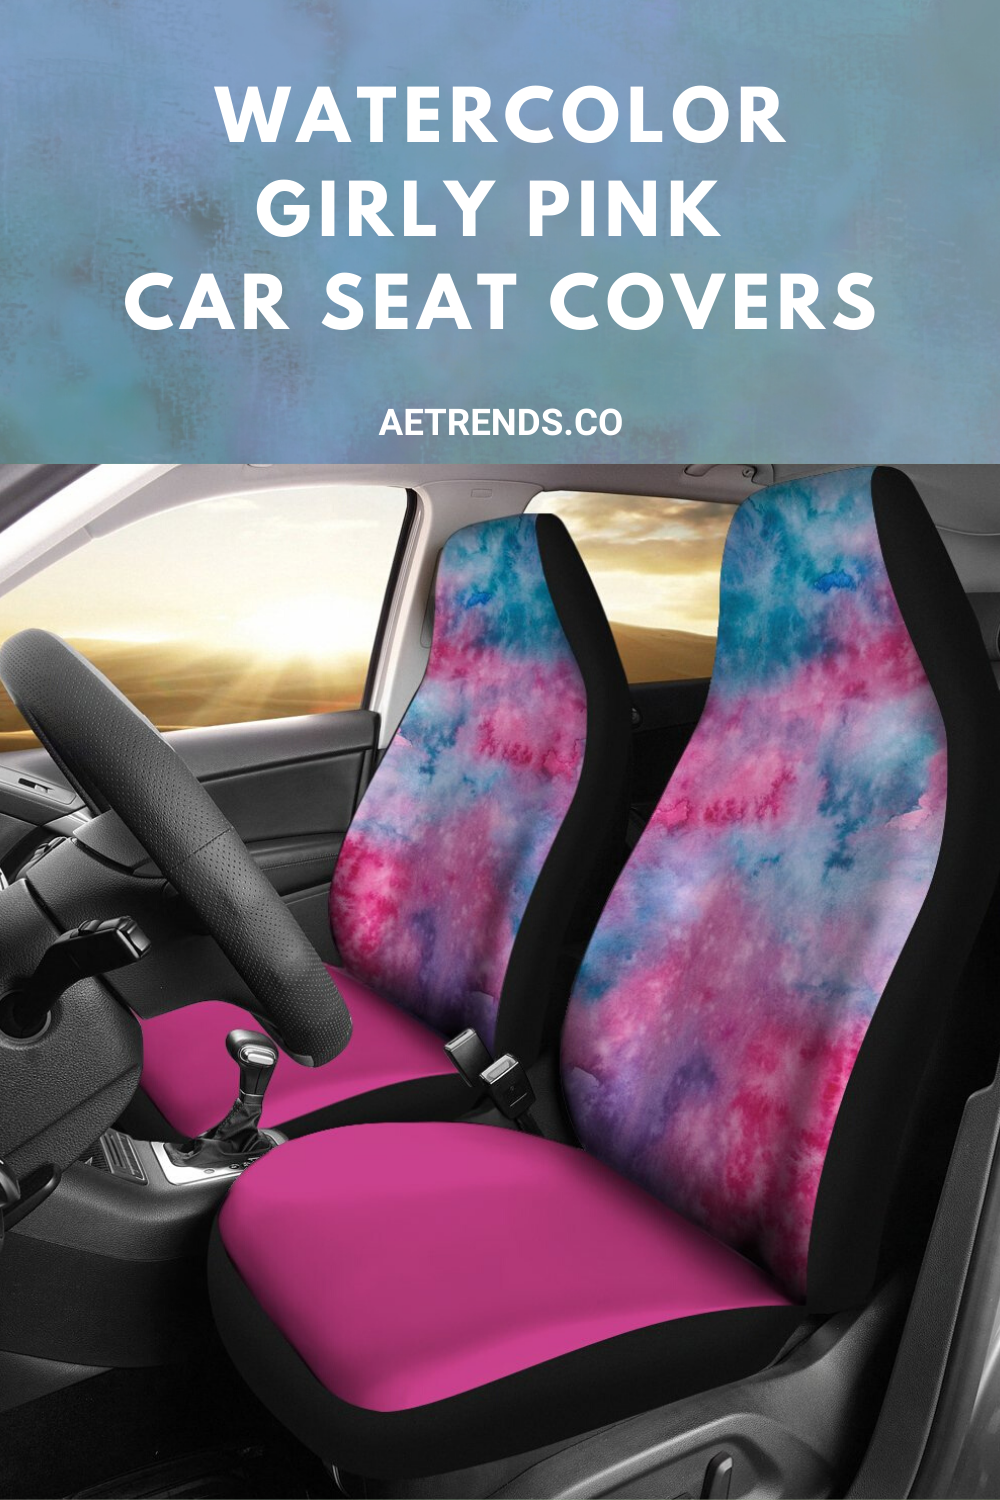 Watercolor Girly Pink Car Seat Covers in 2020 Pink car